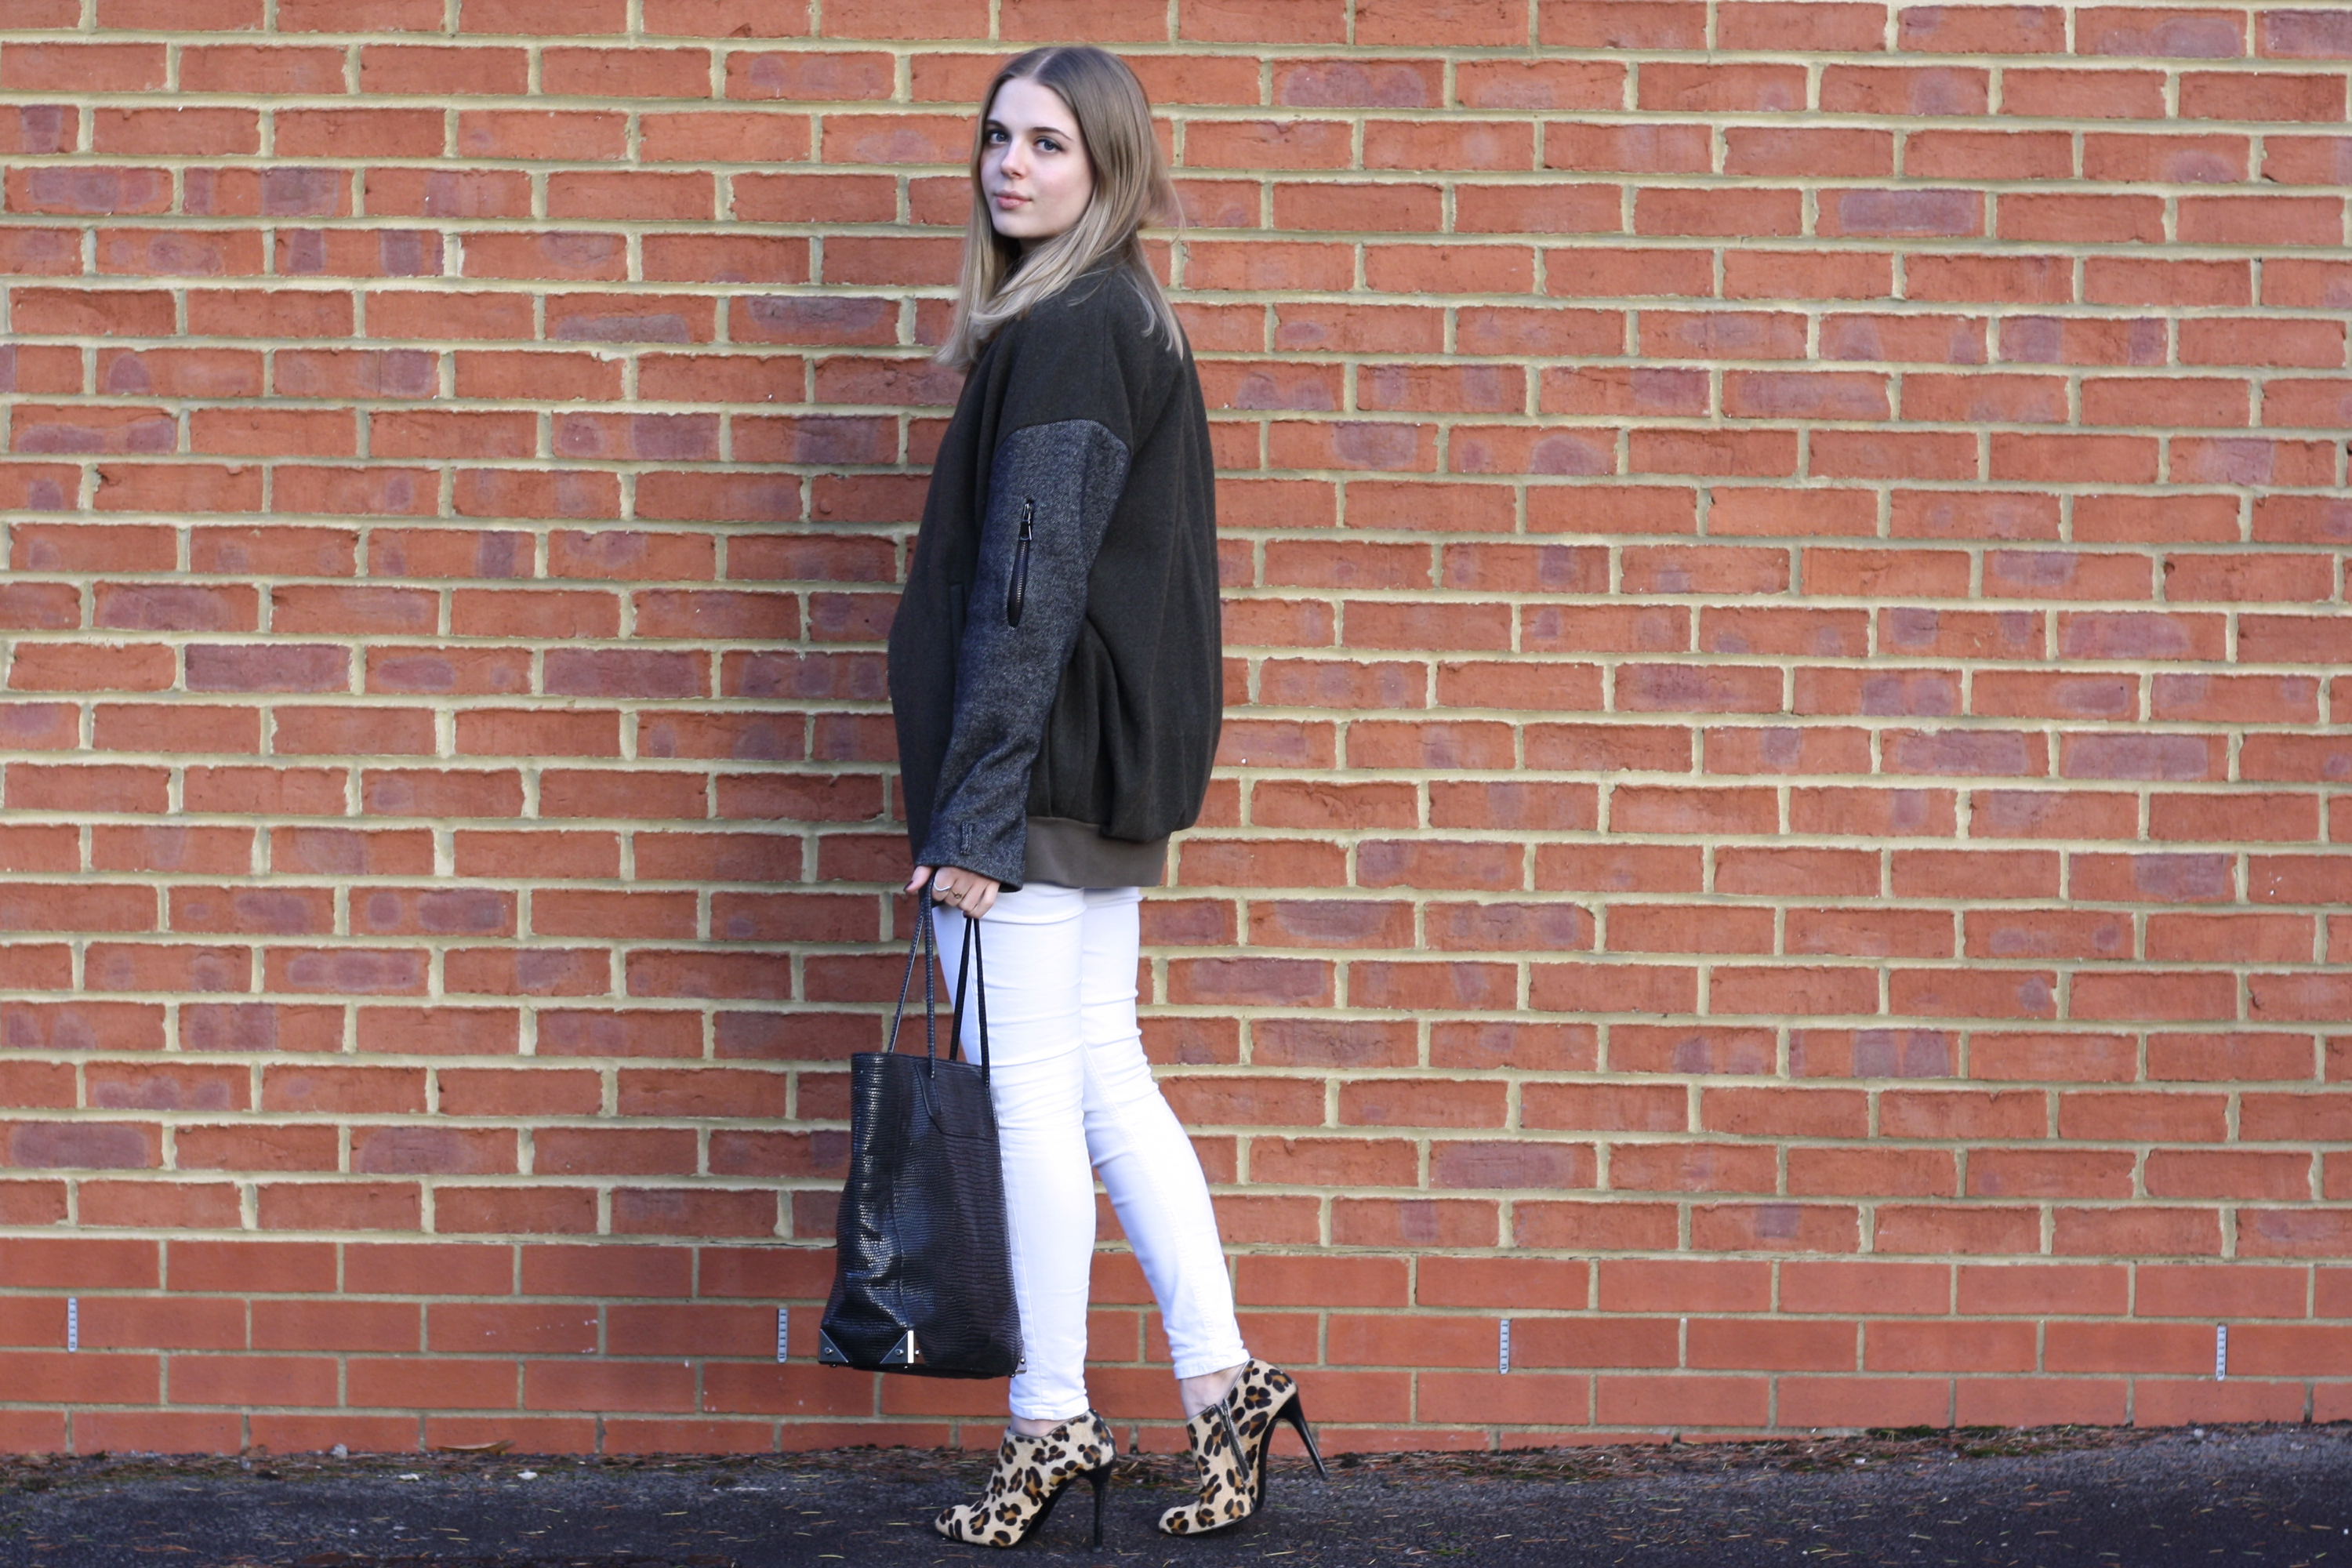 Topshop Unique khaki army jacket, Topshop white Jamie jeans and Zara leopard ankle boots